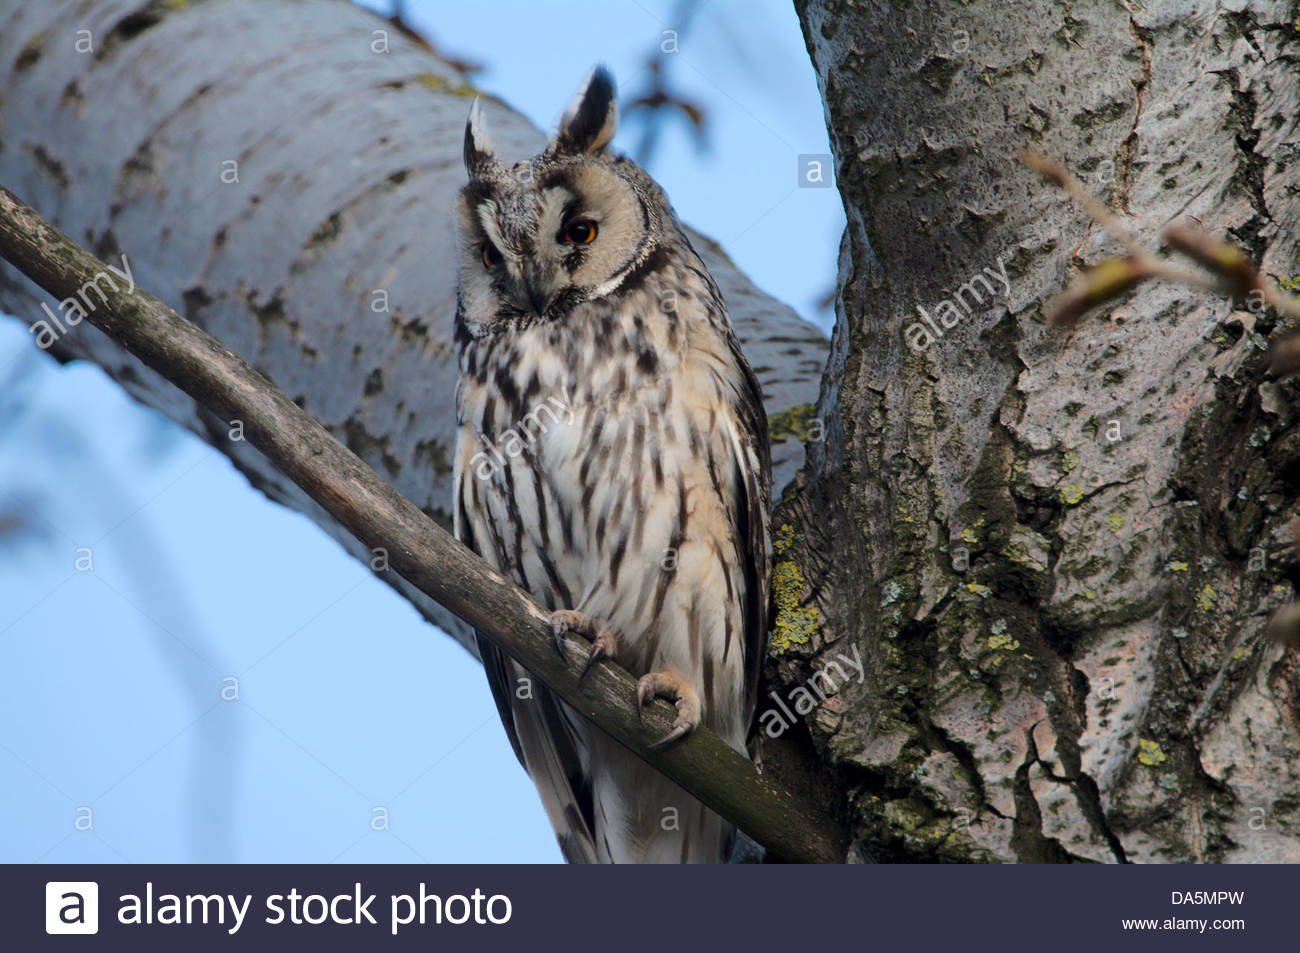 Austria, Europe, Burgenland, bird, birds songbird, owl, long-eared owl, forest, young birds, tree - Stock Image